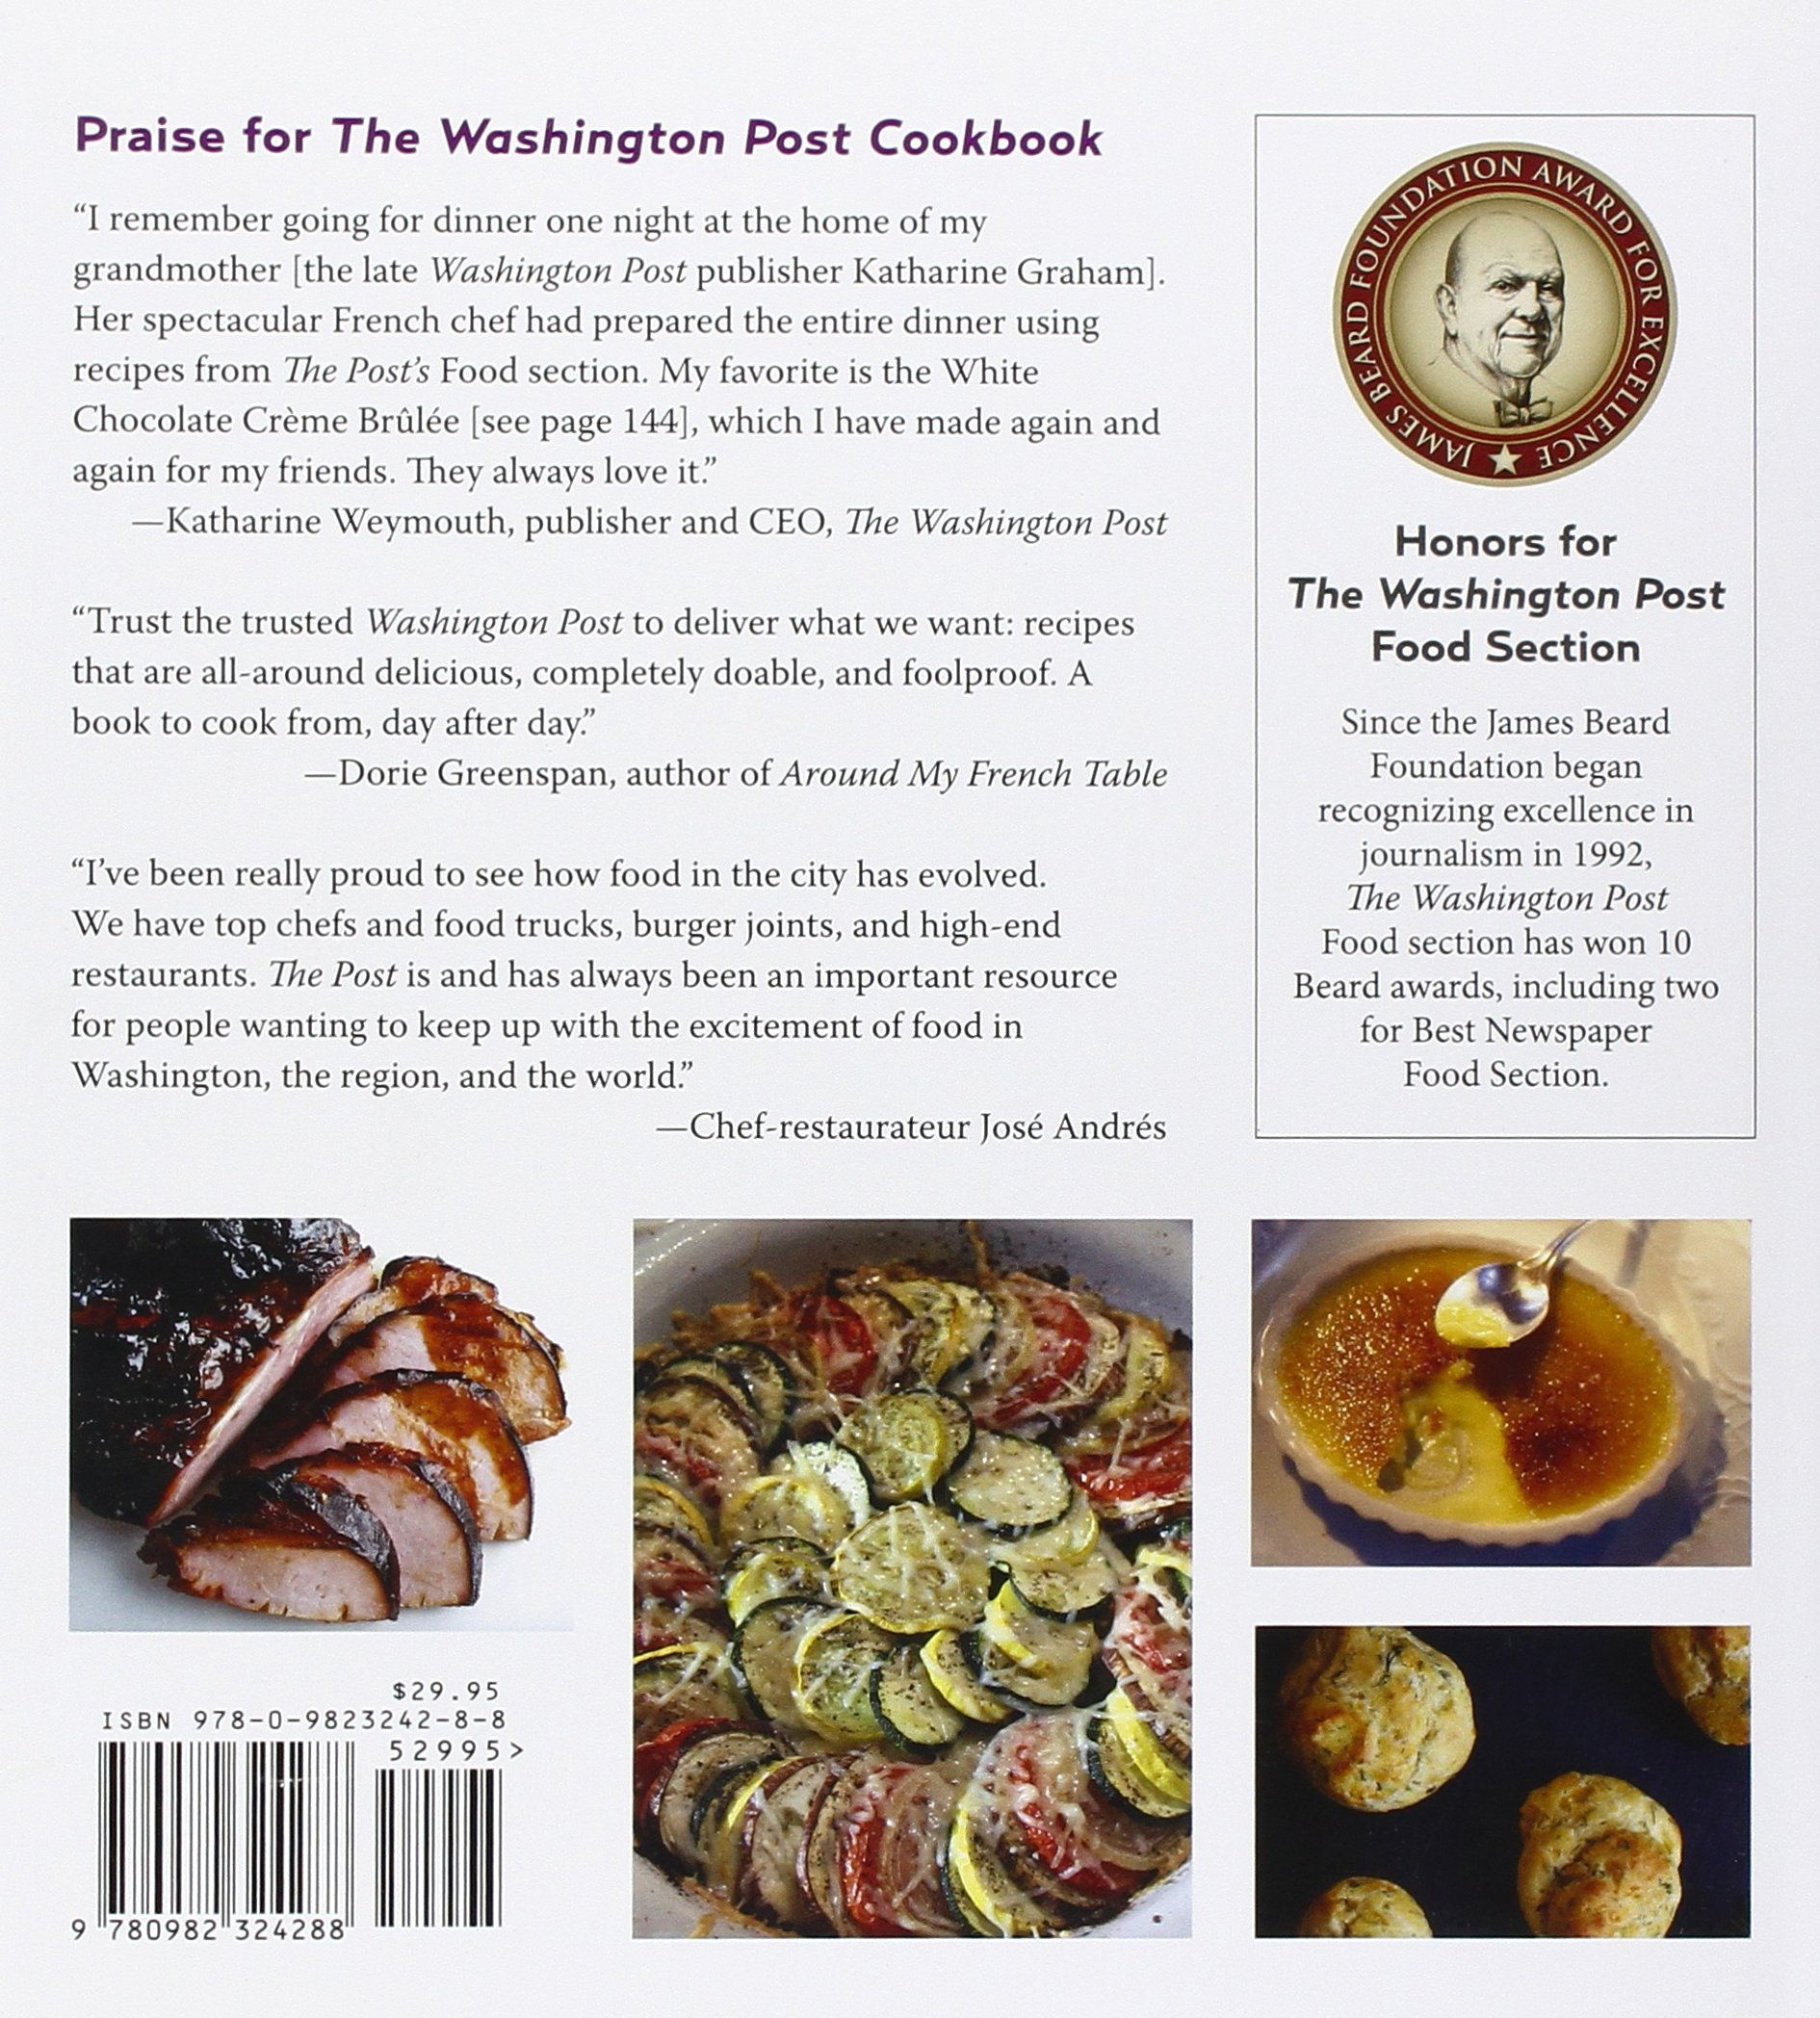 Washington post cookbook bonnie benwick phyllis richman washington post cookbook bonnie benwick phyllis richman 9780982324288 amazon books forumfinder Gallery